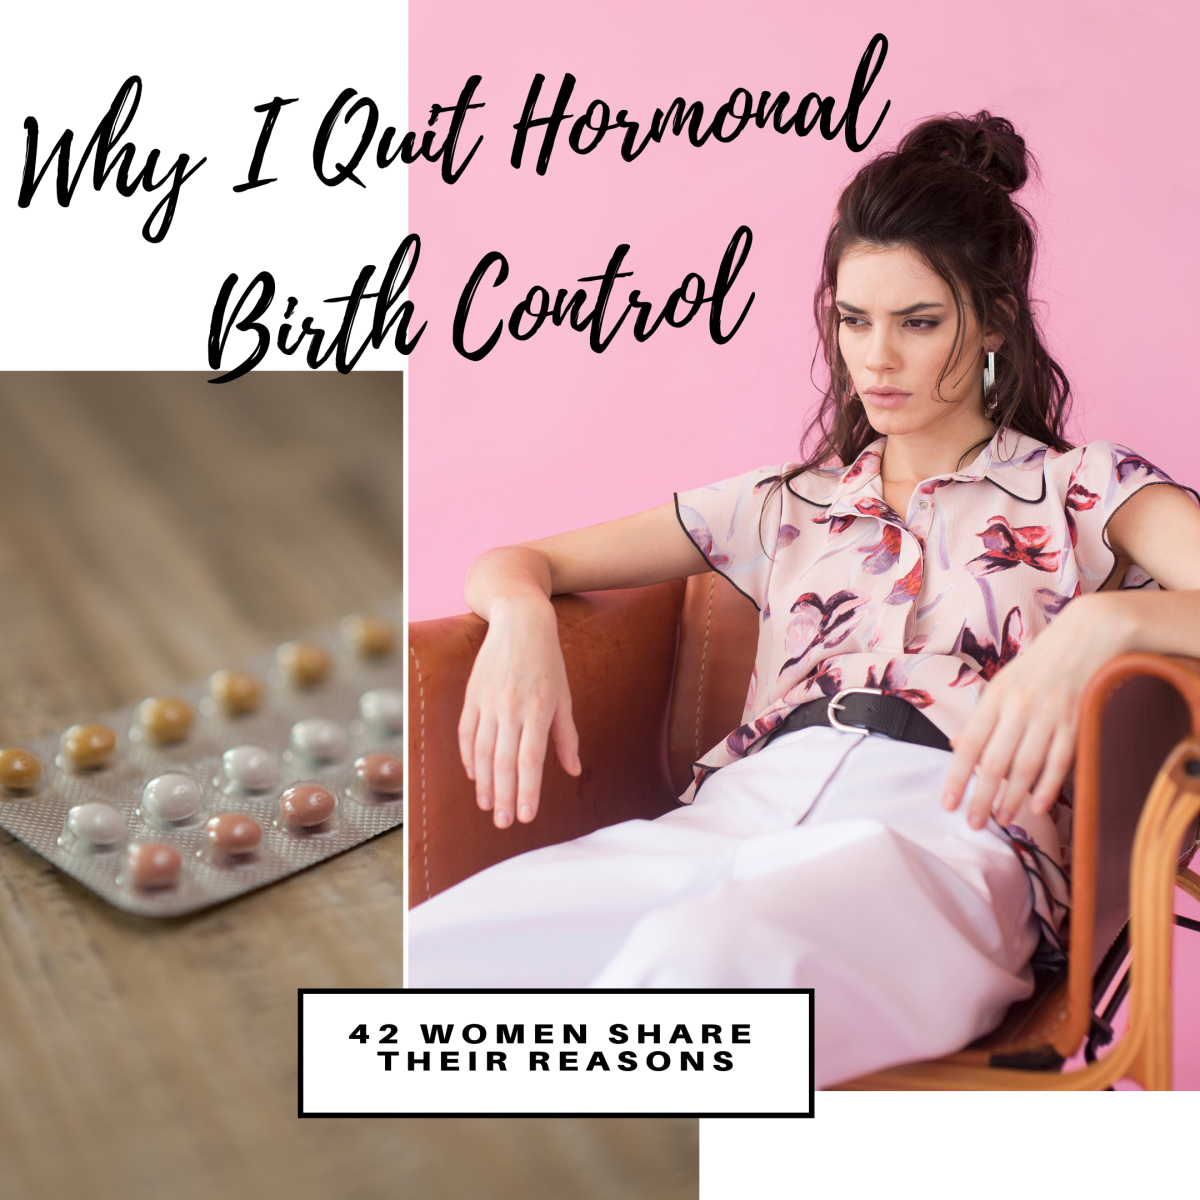 Why I quit hormonal birth control: 42 women share their reasons